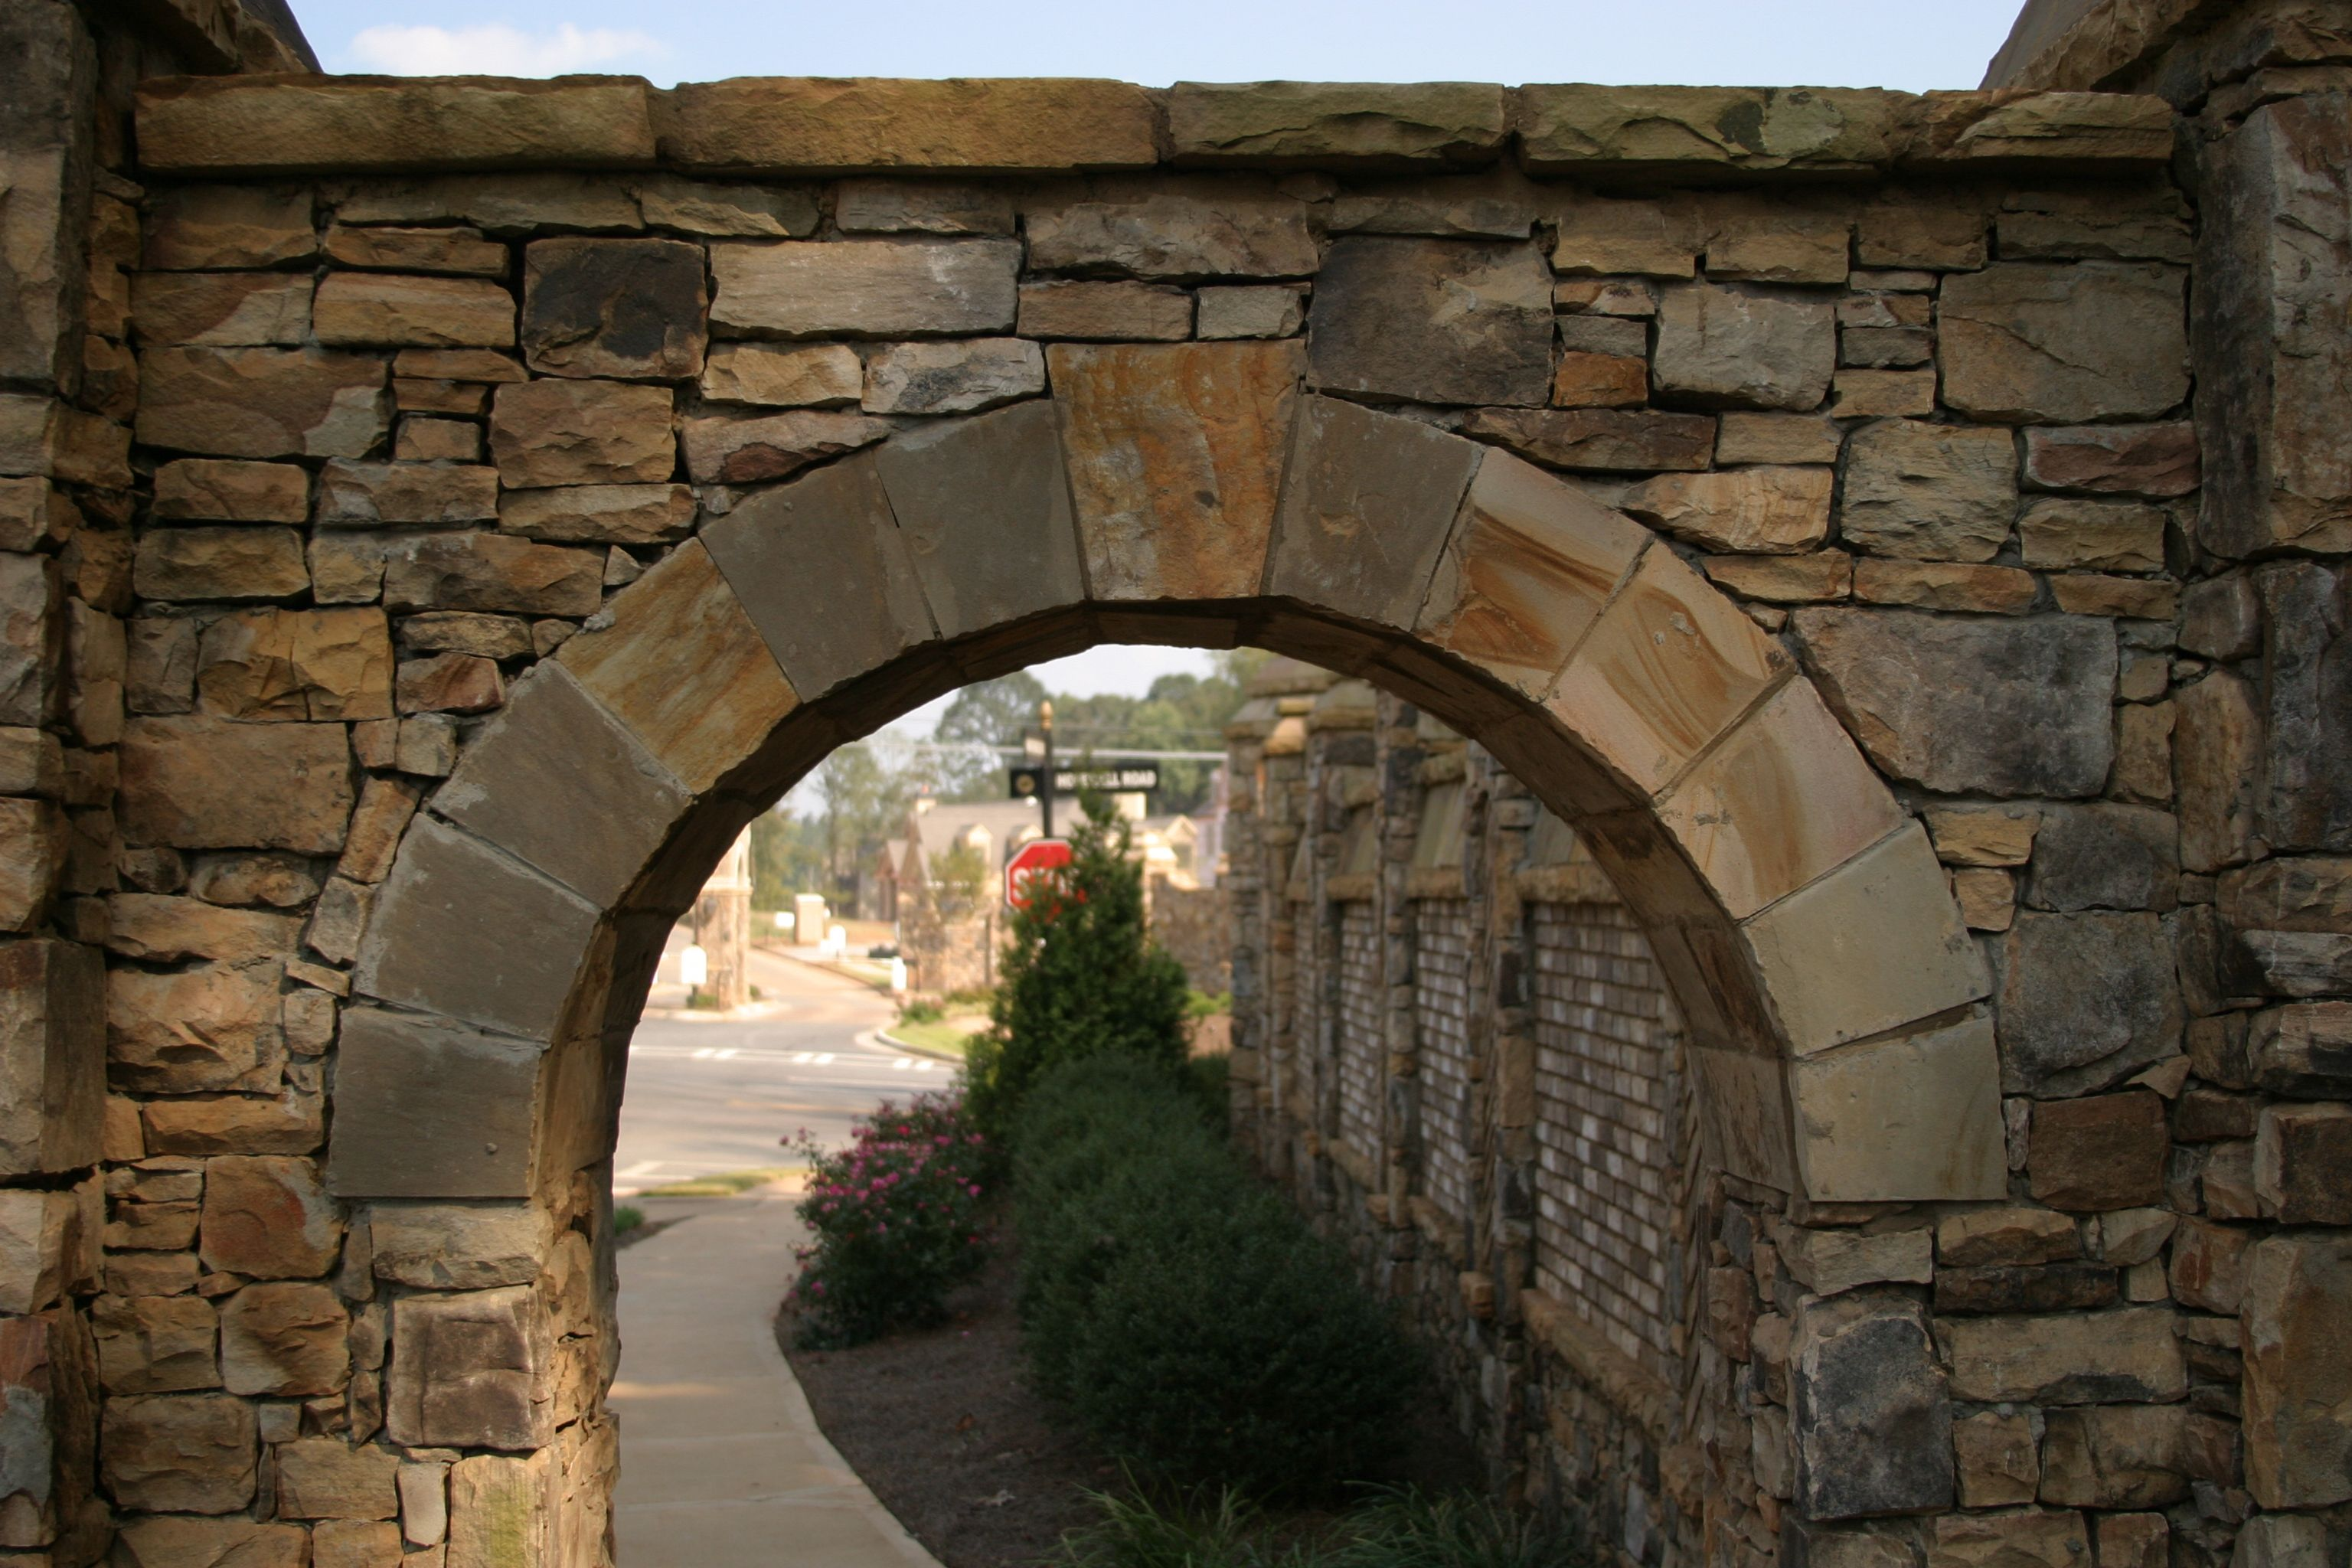 Keystone Natural Stone Archway Leading To A Garden Walkway Or